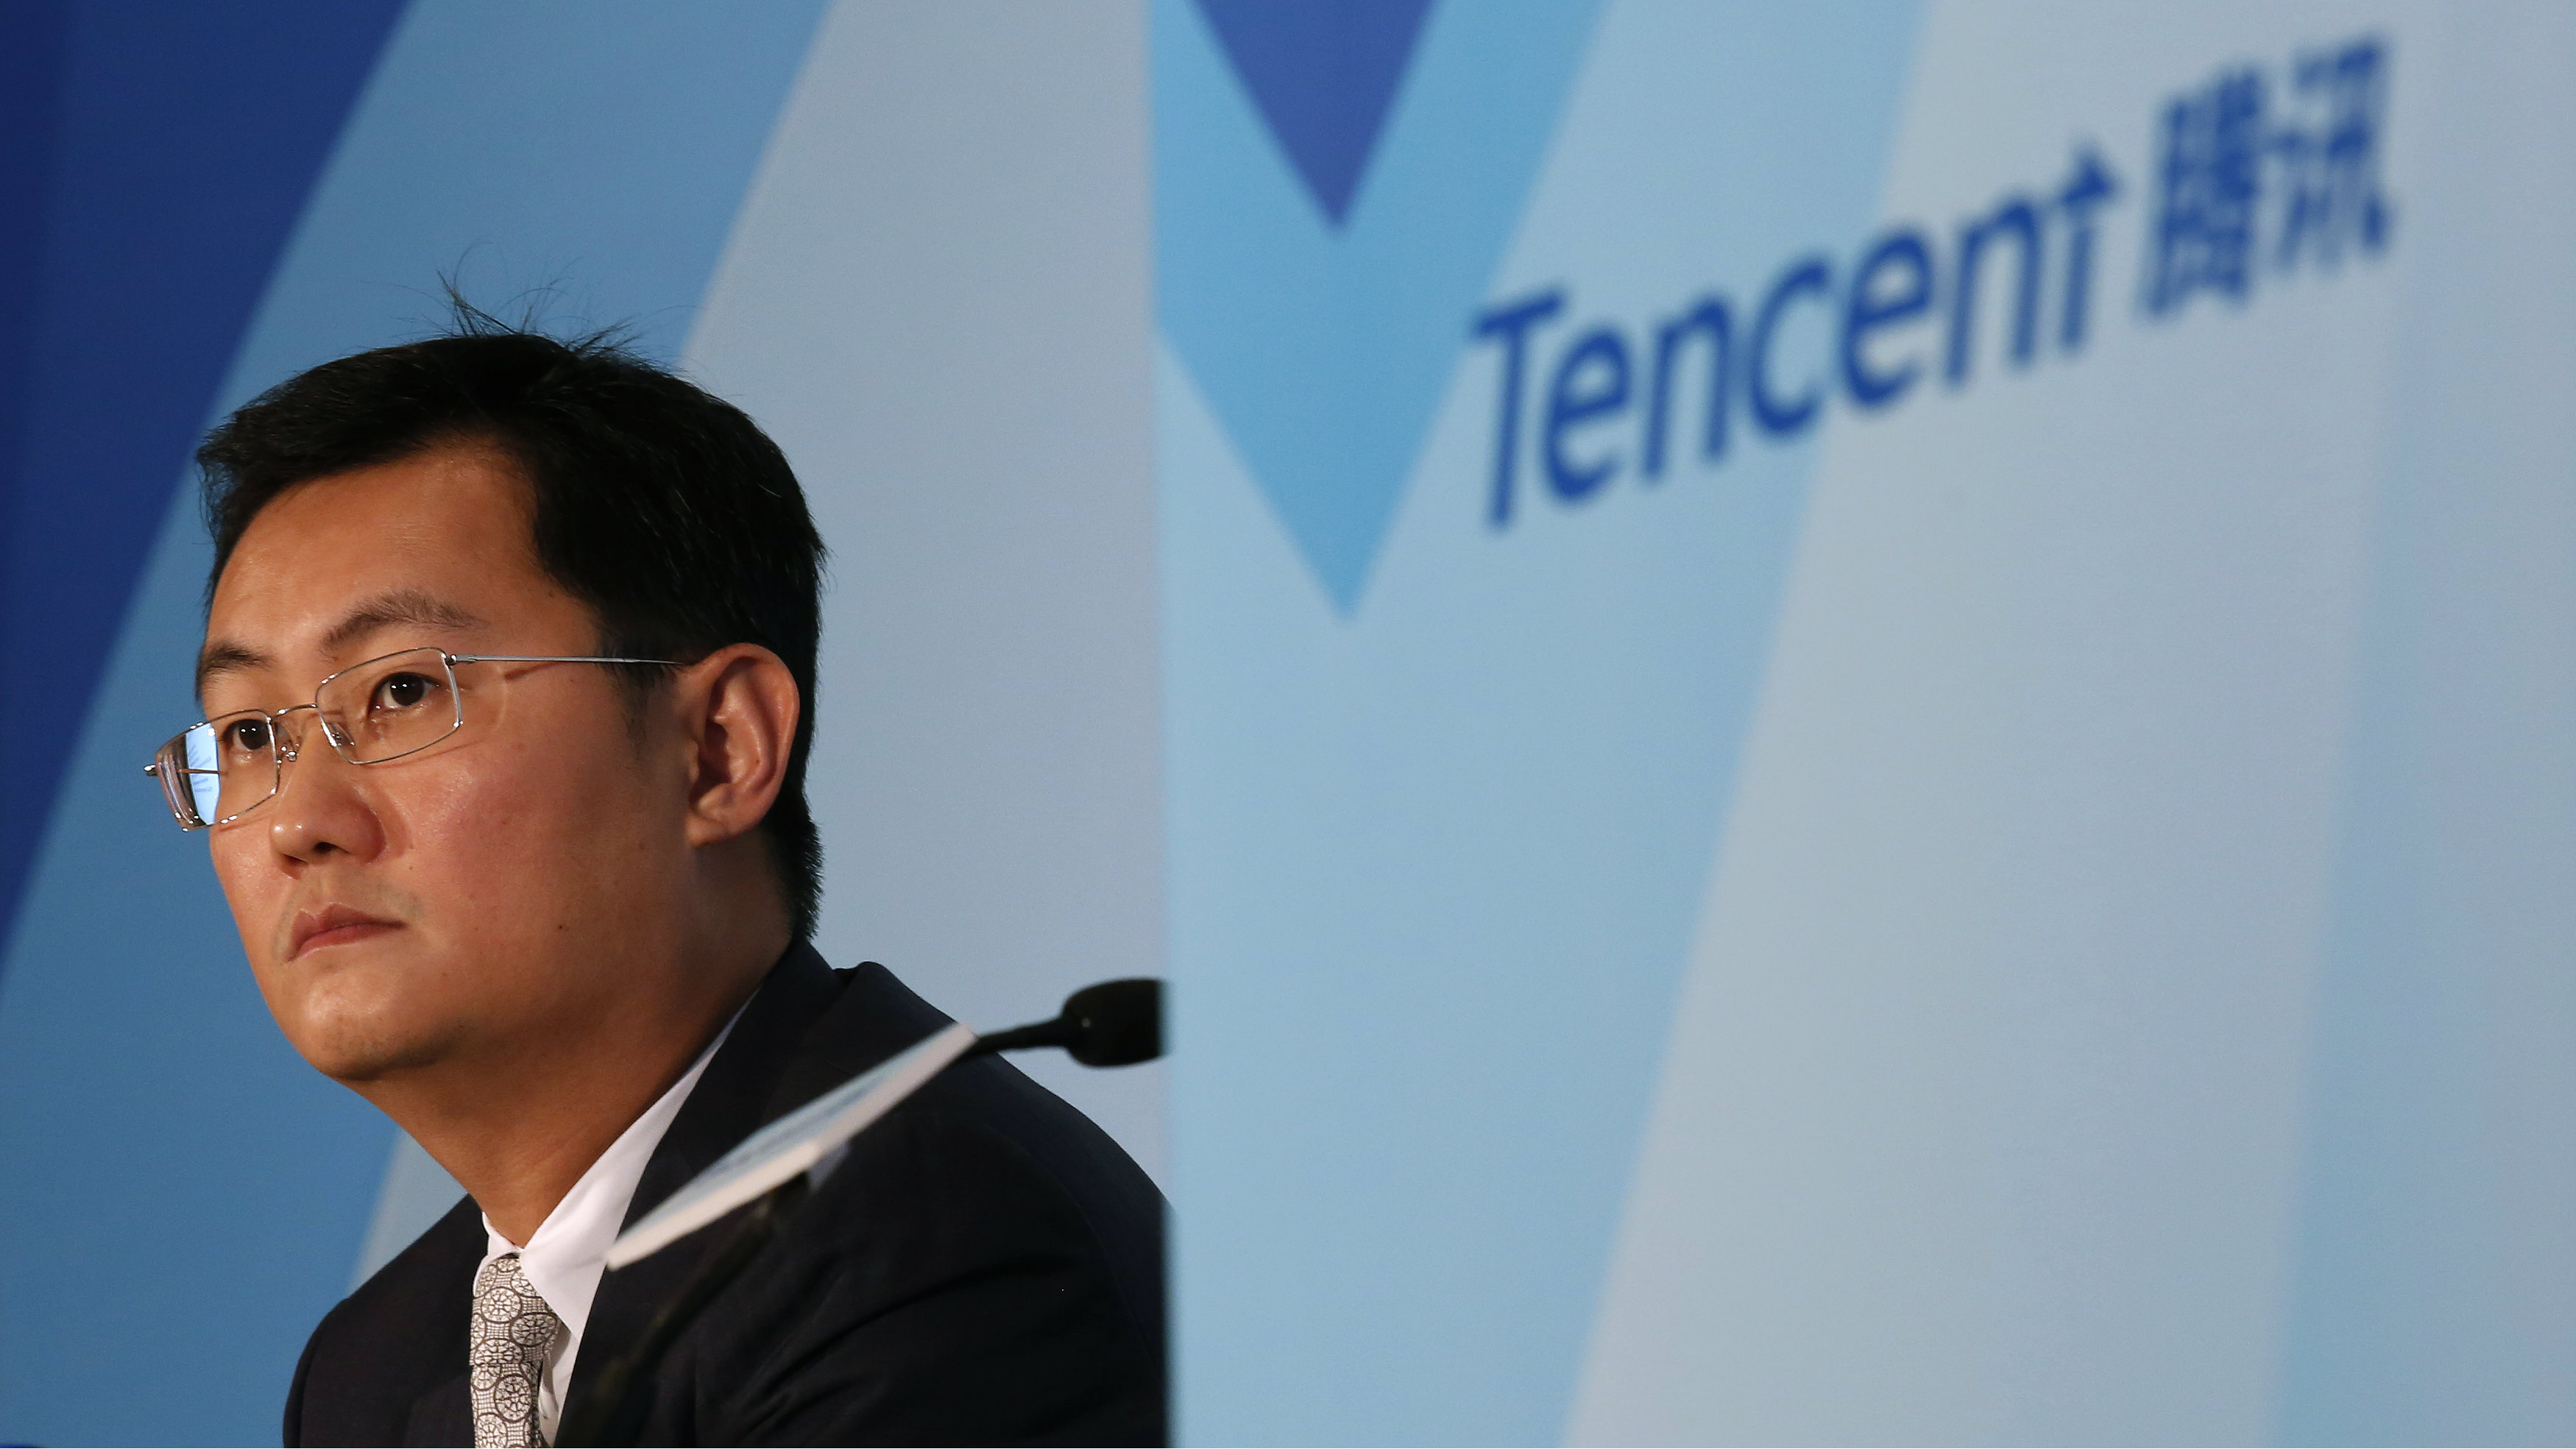 Tencent Chairman & Chief Executive Officer Pony Ma attends a news conference announcing the company's results in Hong Kong March 18, 2015. Tencent Holdings Ltd , China's biggest social network and online entertainment firm, posted a 51 percent gain in fourth-quarter net income, missing estimates, as sharing and content costs took a bite out of healthy revenue growth.